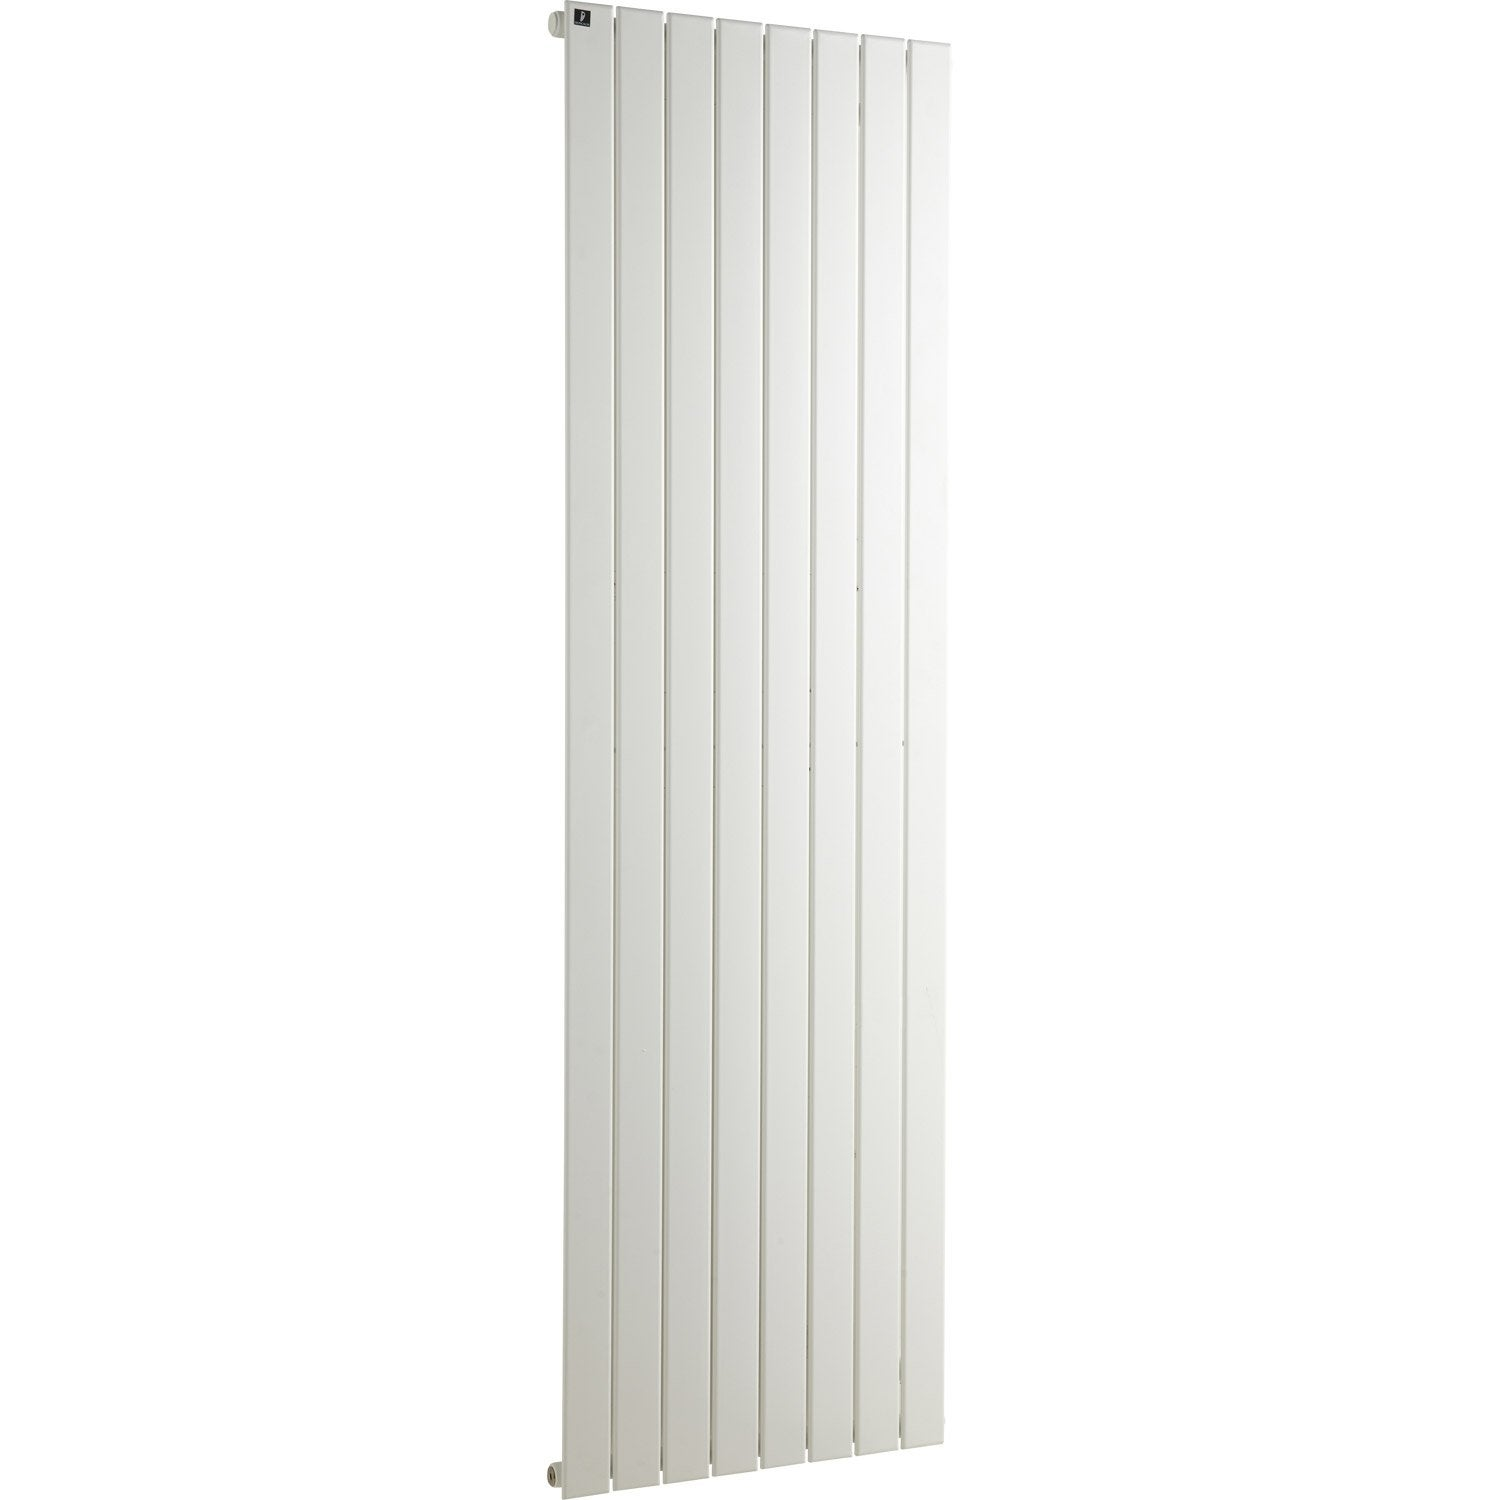 radiateur chauffage central pianosa blanc cm 1265 w leroy merlin. Black Bedroom Furniture Sets. Home Design Ideas